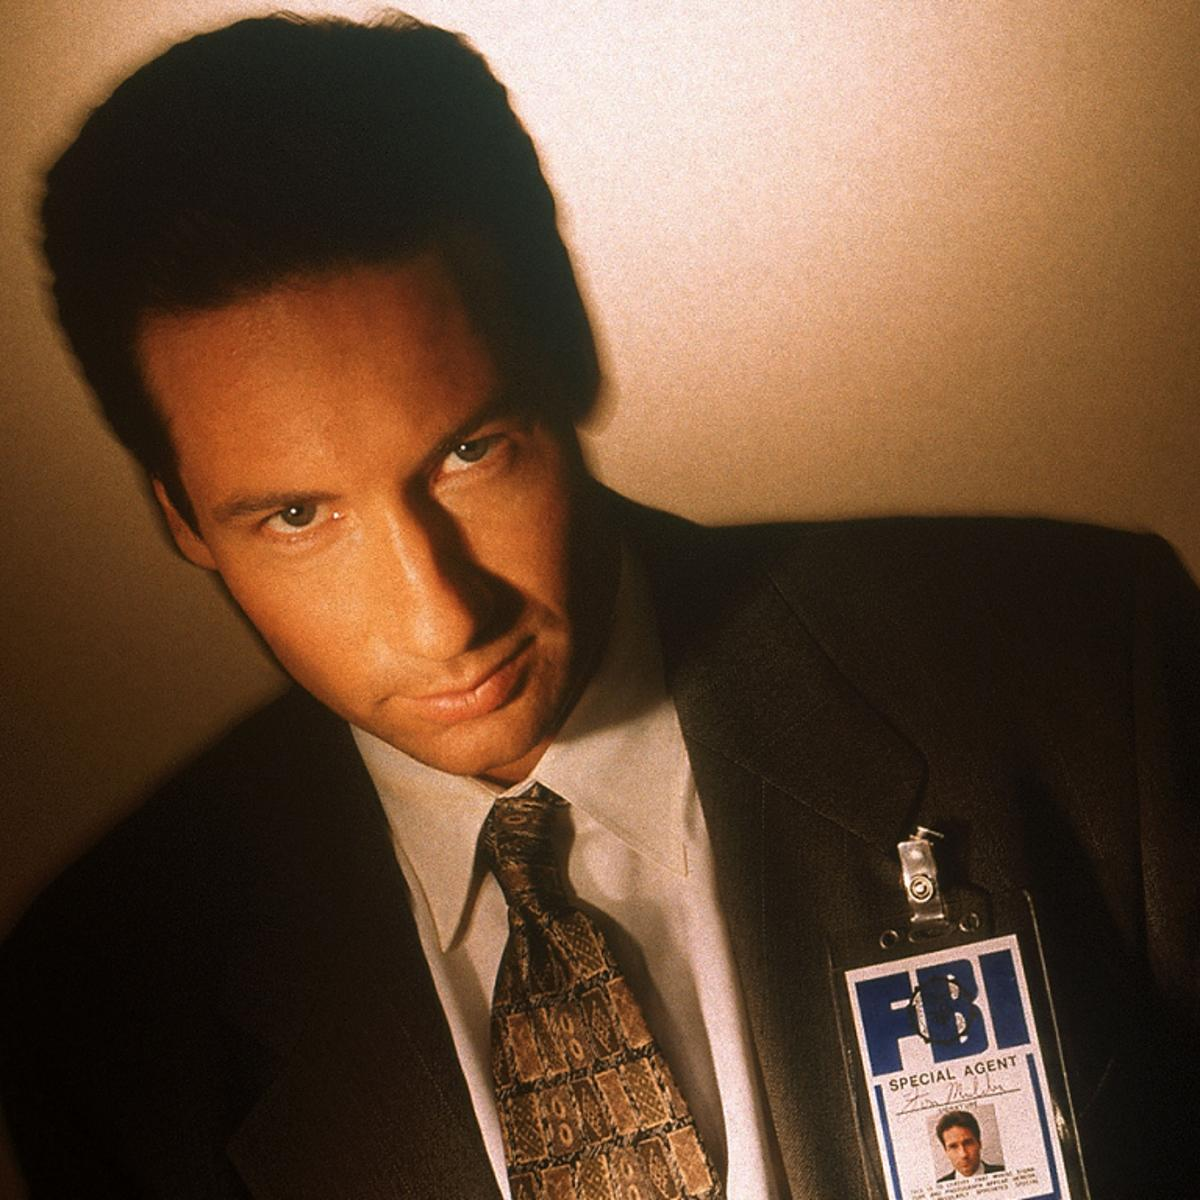 Mulder-the-x-files-25366547-1024-768.png